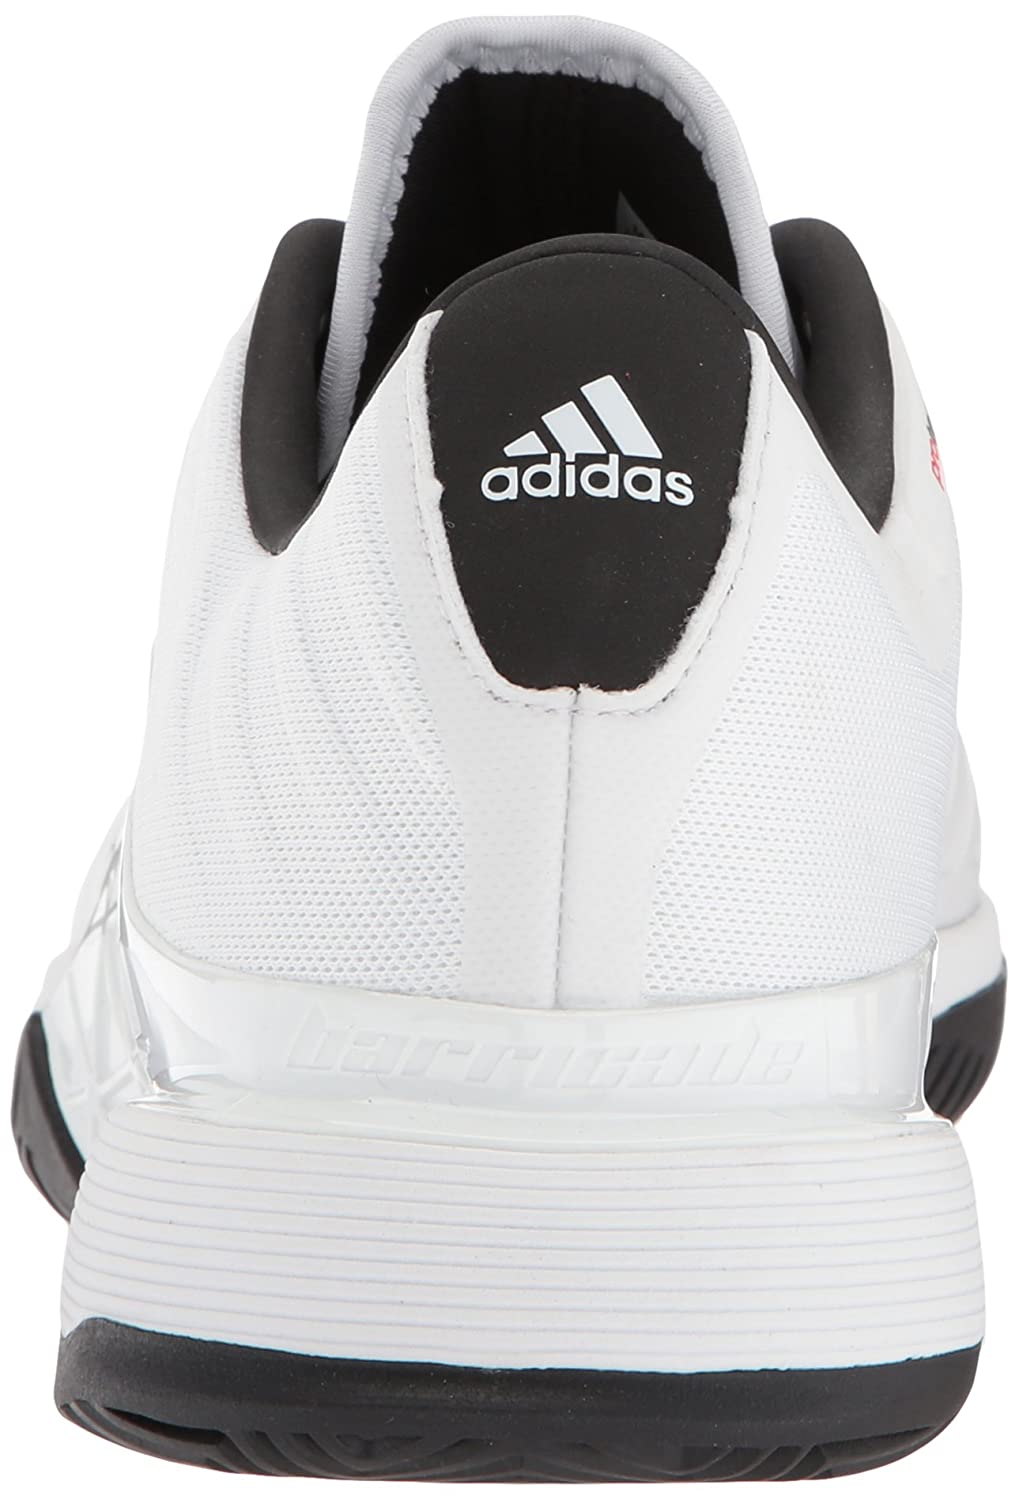 fe60c8ed Amazon.com | adidas Men's Barricade 2018 Tennis Shoe | Tennis & Racquet  Sports